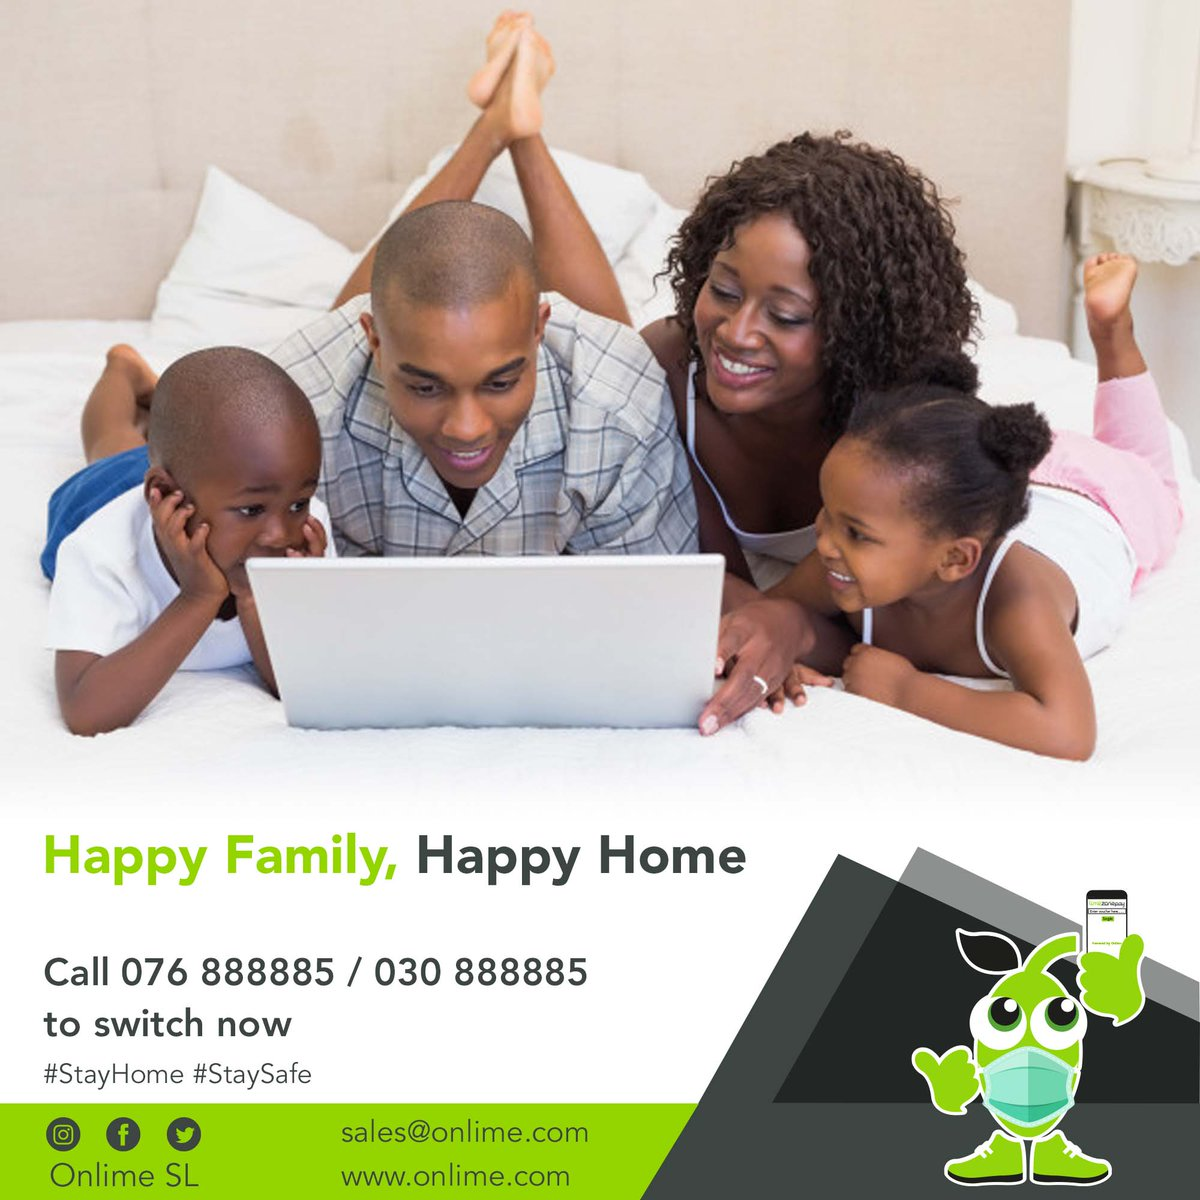 Super-fast internet to bring loved ones closer. Switch to #OnlimeInternet today and feel the difference. Call 076 888885 / 030 888885 or email sales@onlime.sl to get started. #SierraLeone #StayHome #StaySafe #Freetown https://t.co/AfzfyyryA8